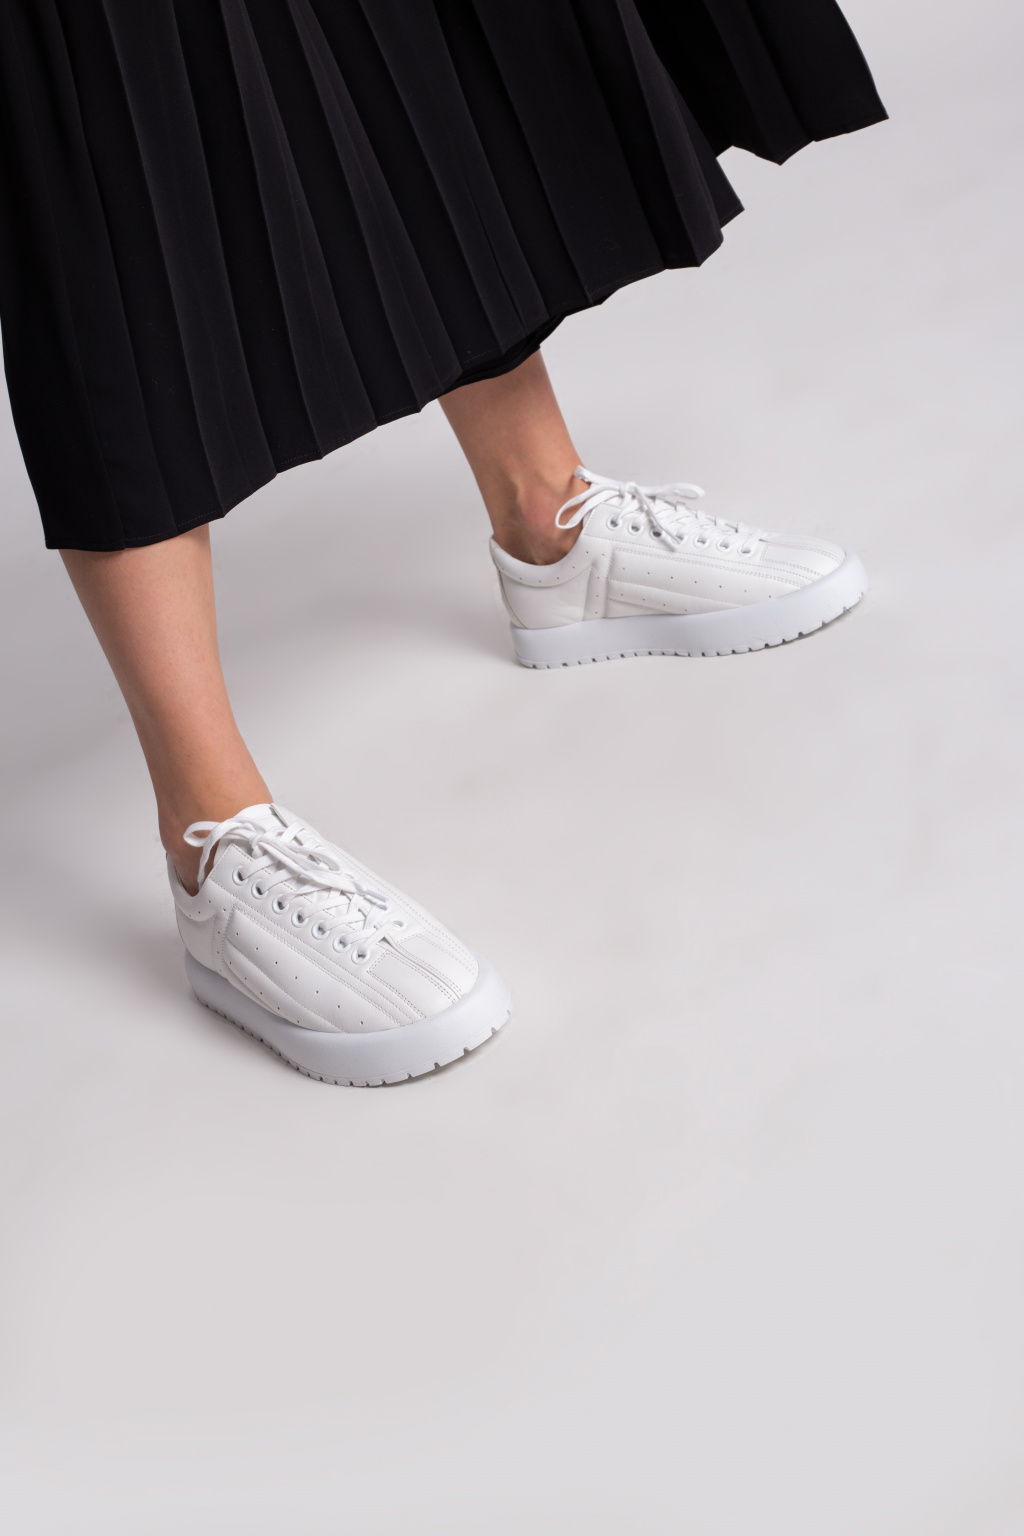 MM6 Maison Margiela Perforated sneakers